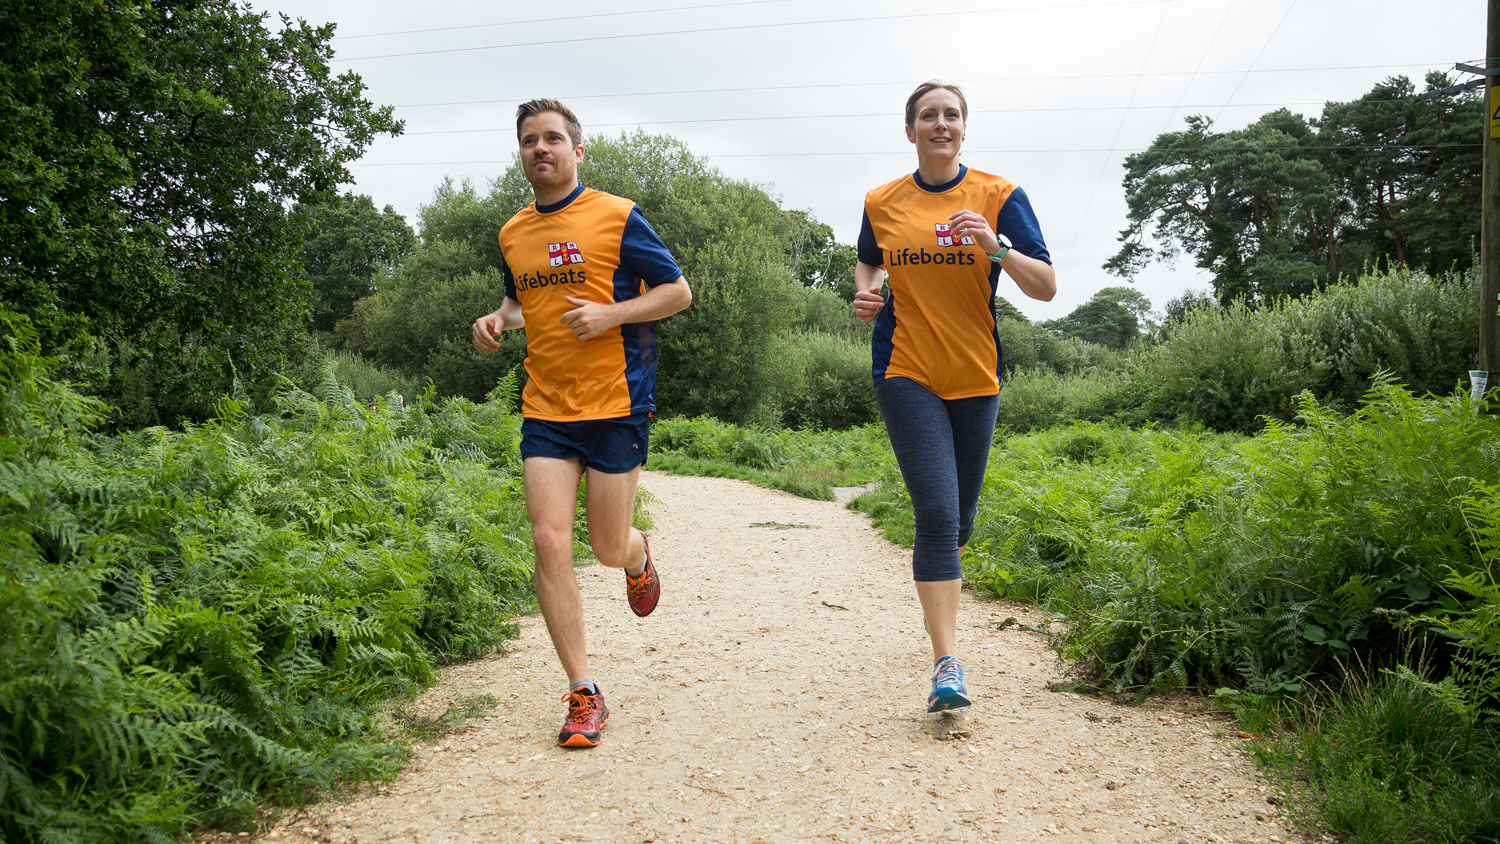 Two RNLI fundraisers running along a woodland track